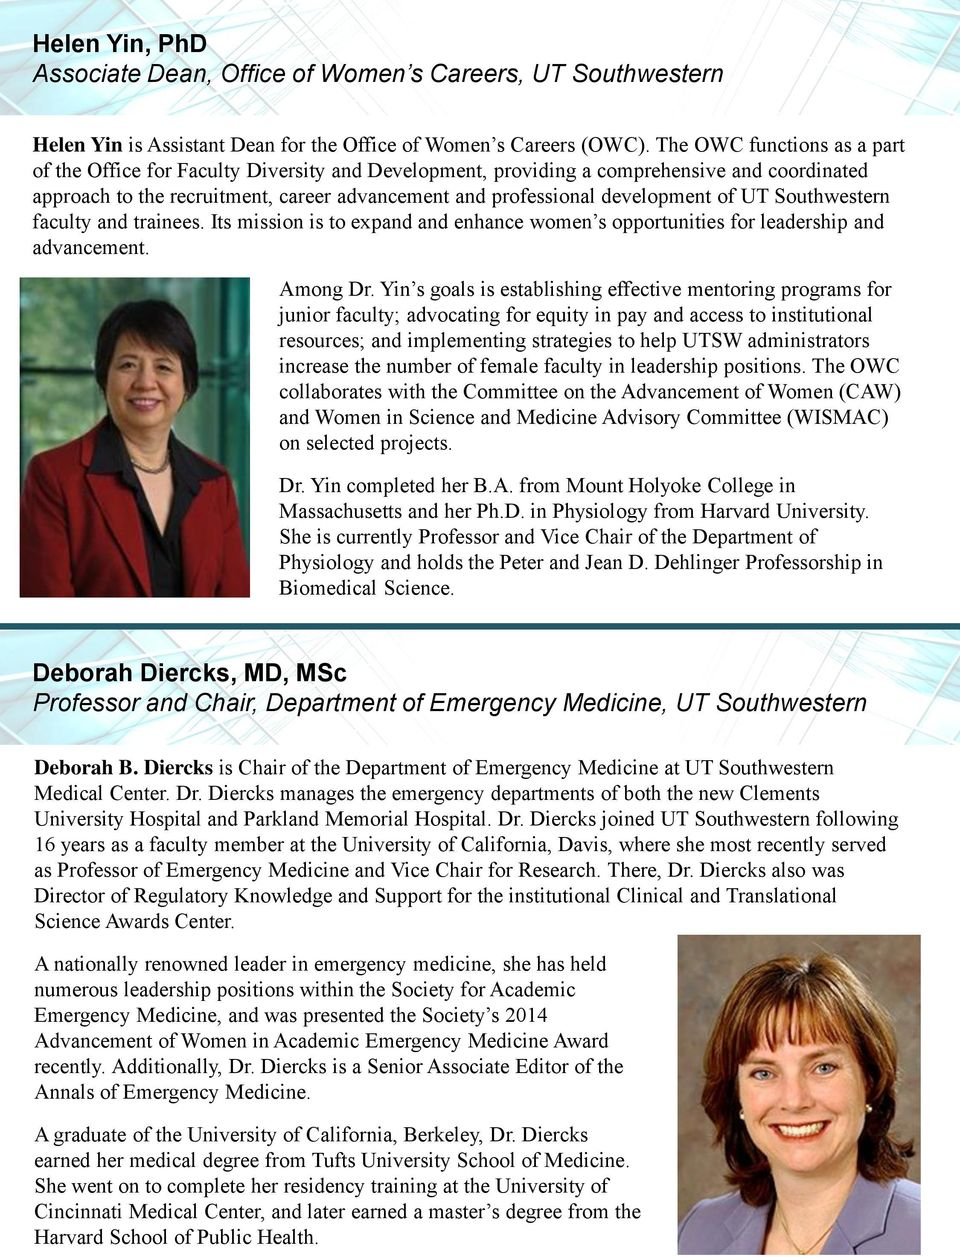 of UT Southwestern faculty and trainees. Its mission is to expand and enhance women s opportunities for leadership and advancement. Among Dr.